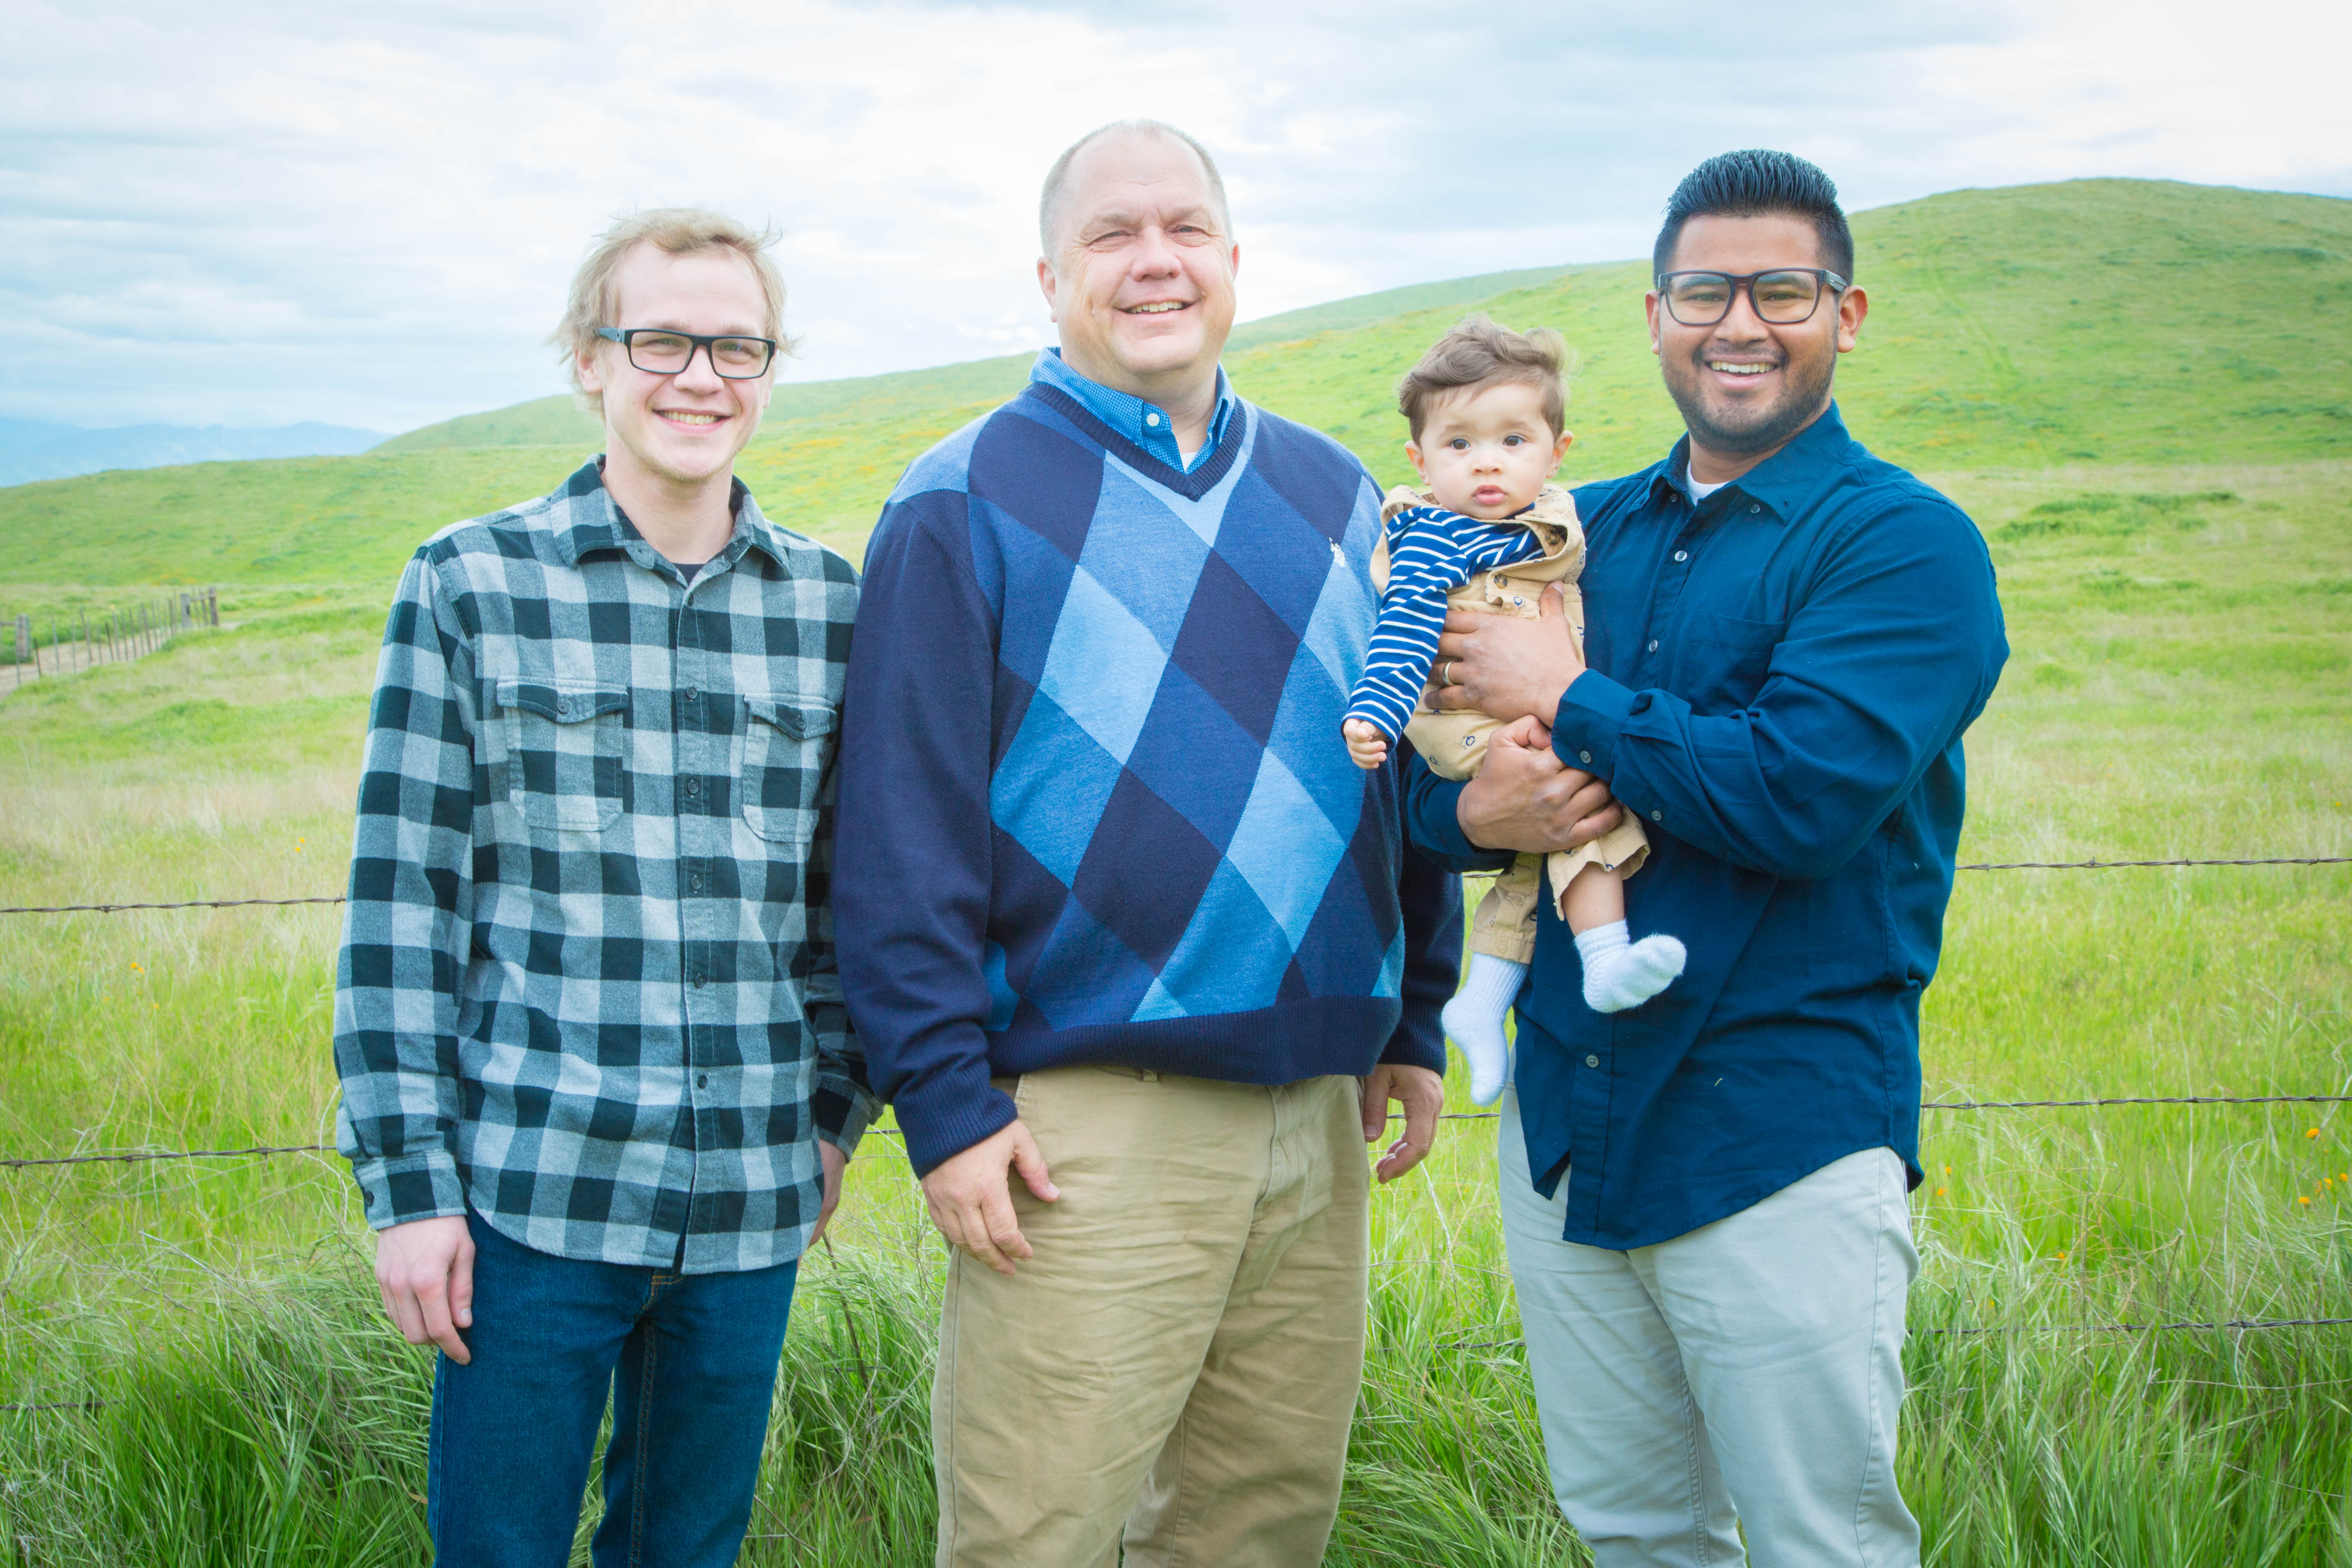 Andreasen Family Session - Kern County - Nilas Photography - Photographer (26 of 30)